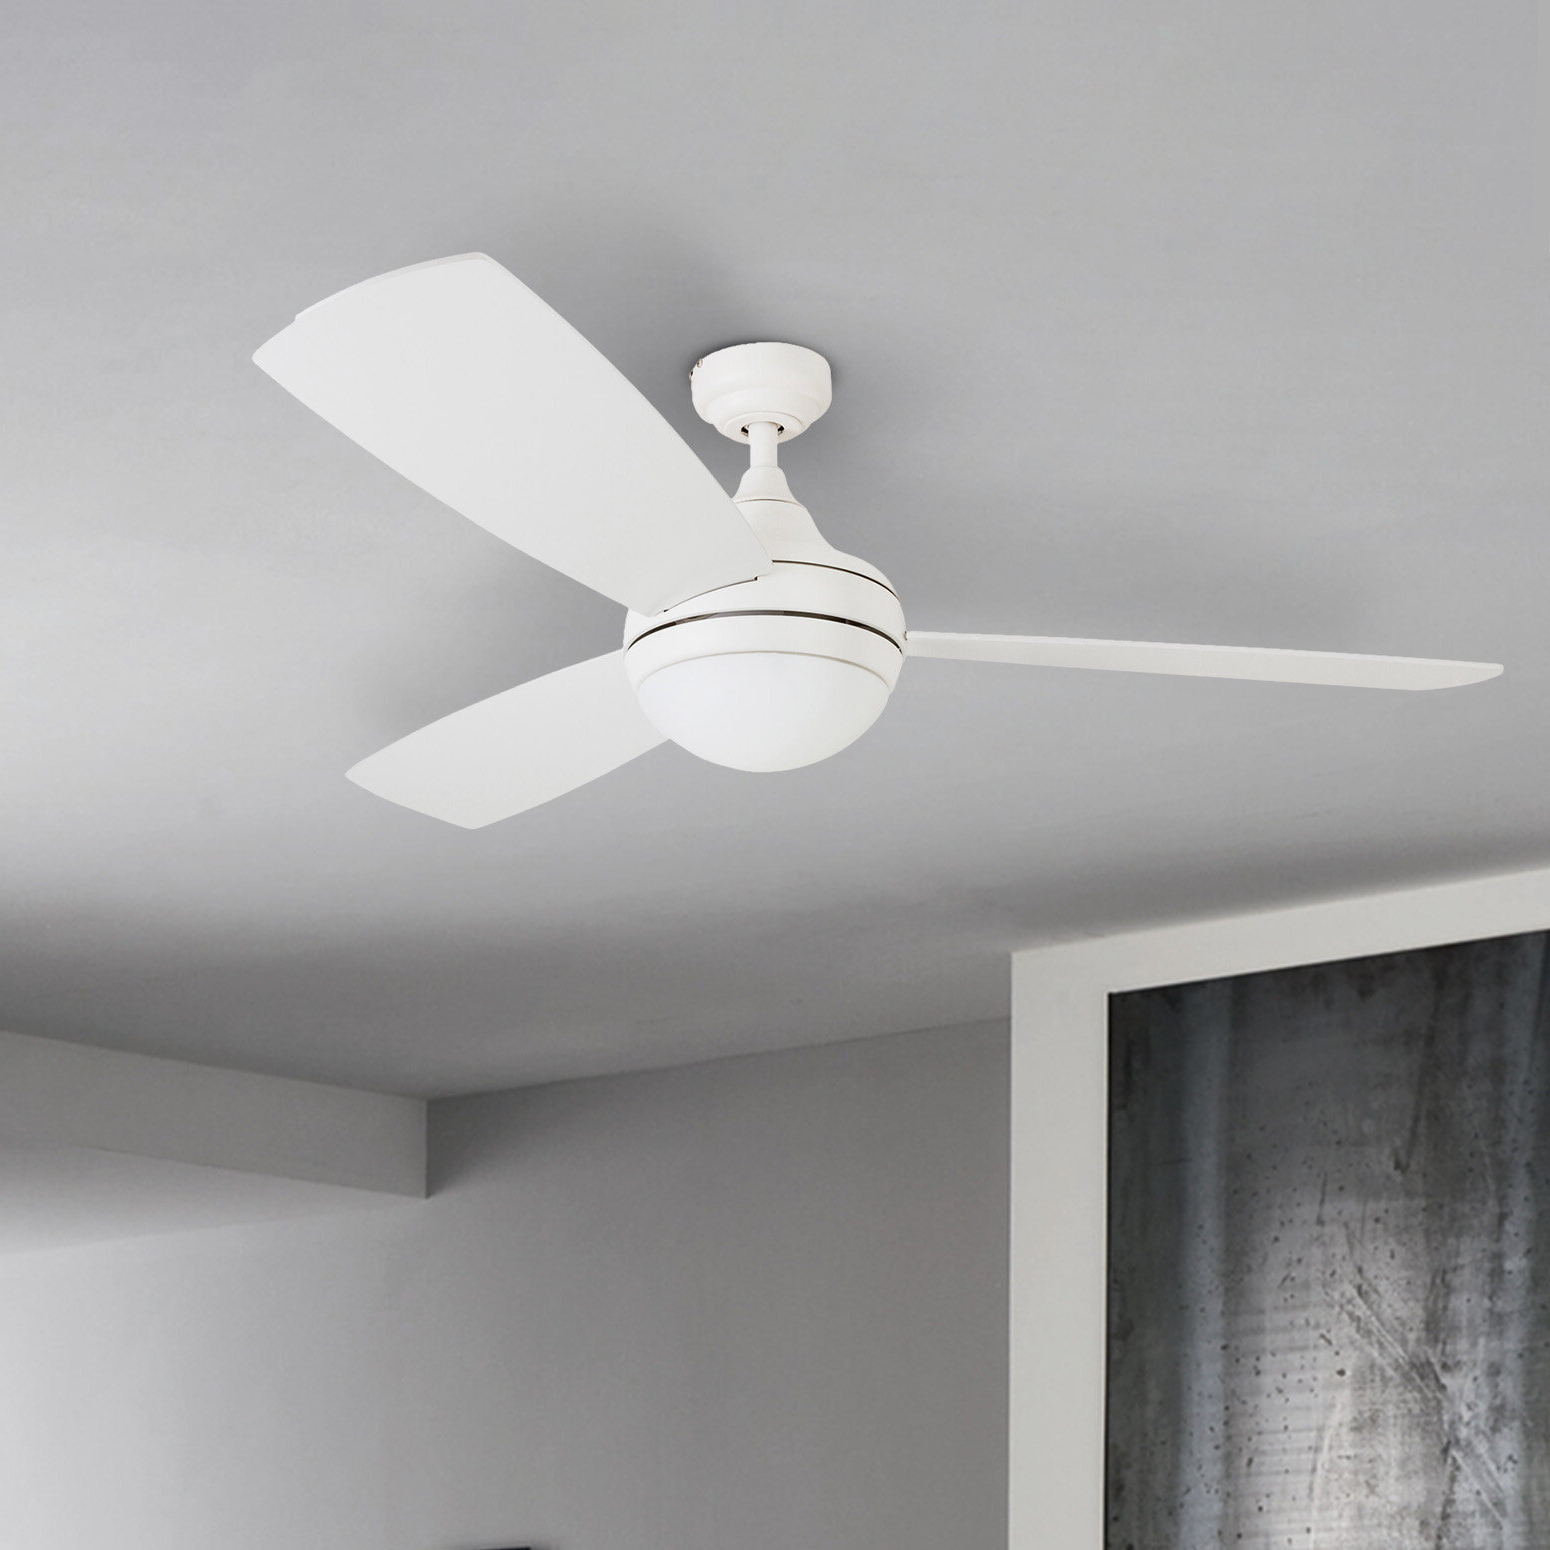 "Famous 52"" Alyce 3 Blade Led Ceiling Fan With Remote Control Within Alyce 3 Blade Led Ceiling Fans With Remote Control (View 3 of 20)"